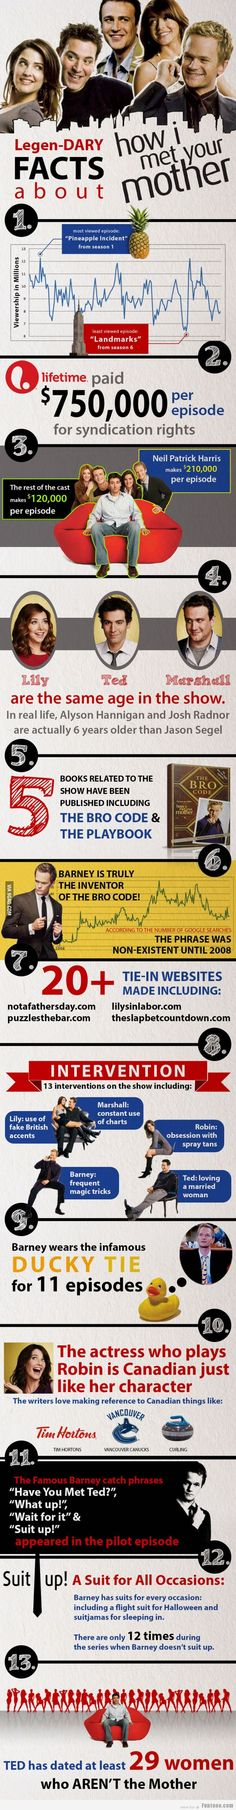 Legendary facts about HIMYM